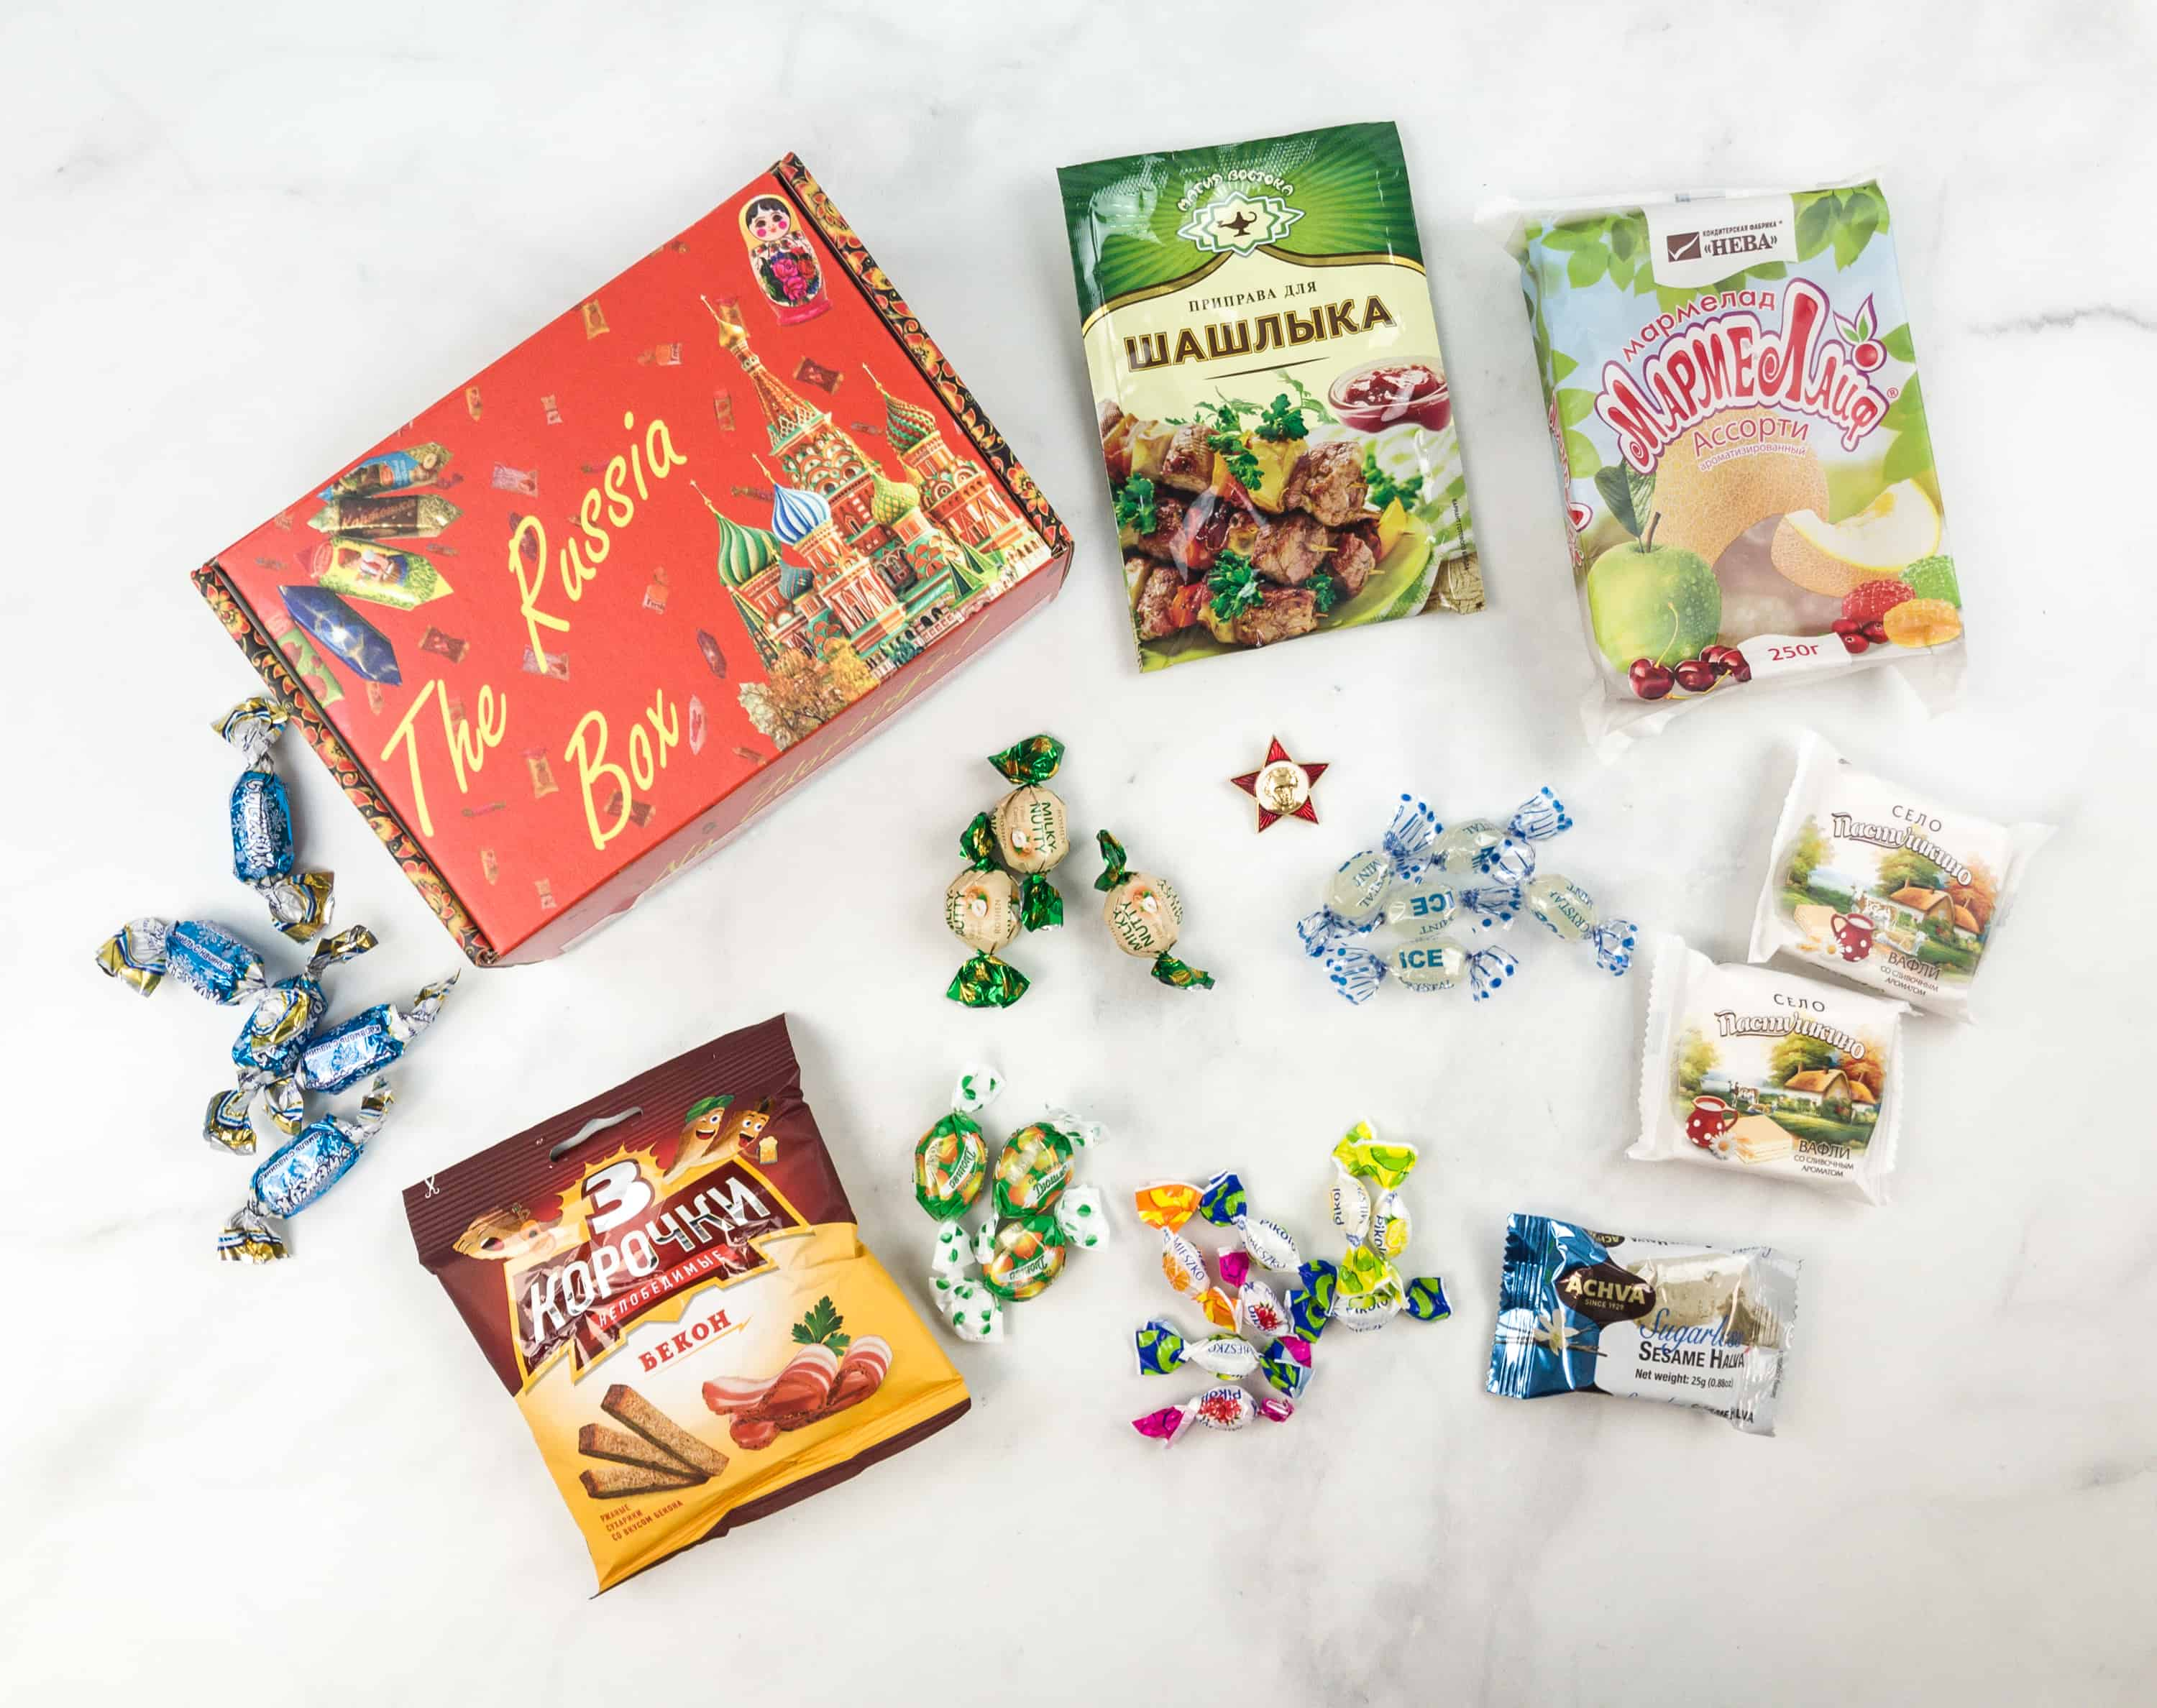 The Russia Box July 2018 Subscription Box Review + Coupons